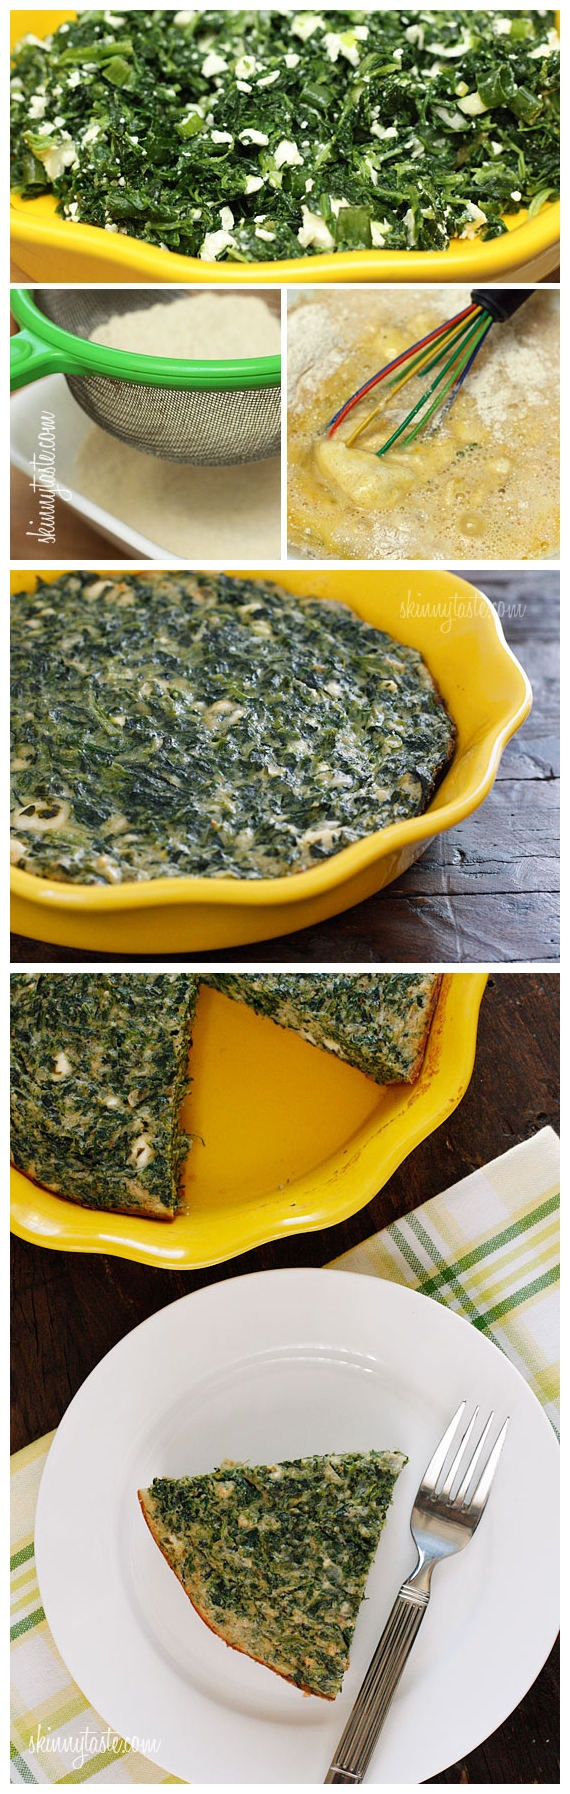 Easy Crust-less Spinach and Feta Pie | just food | Pinterest